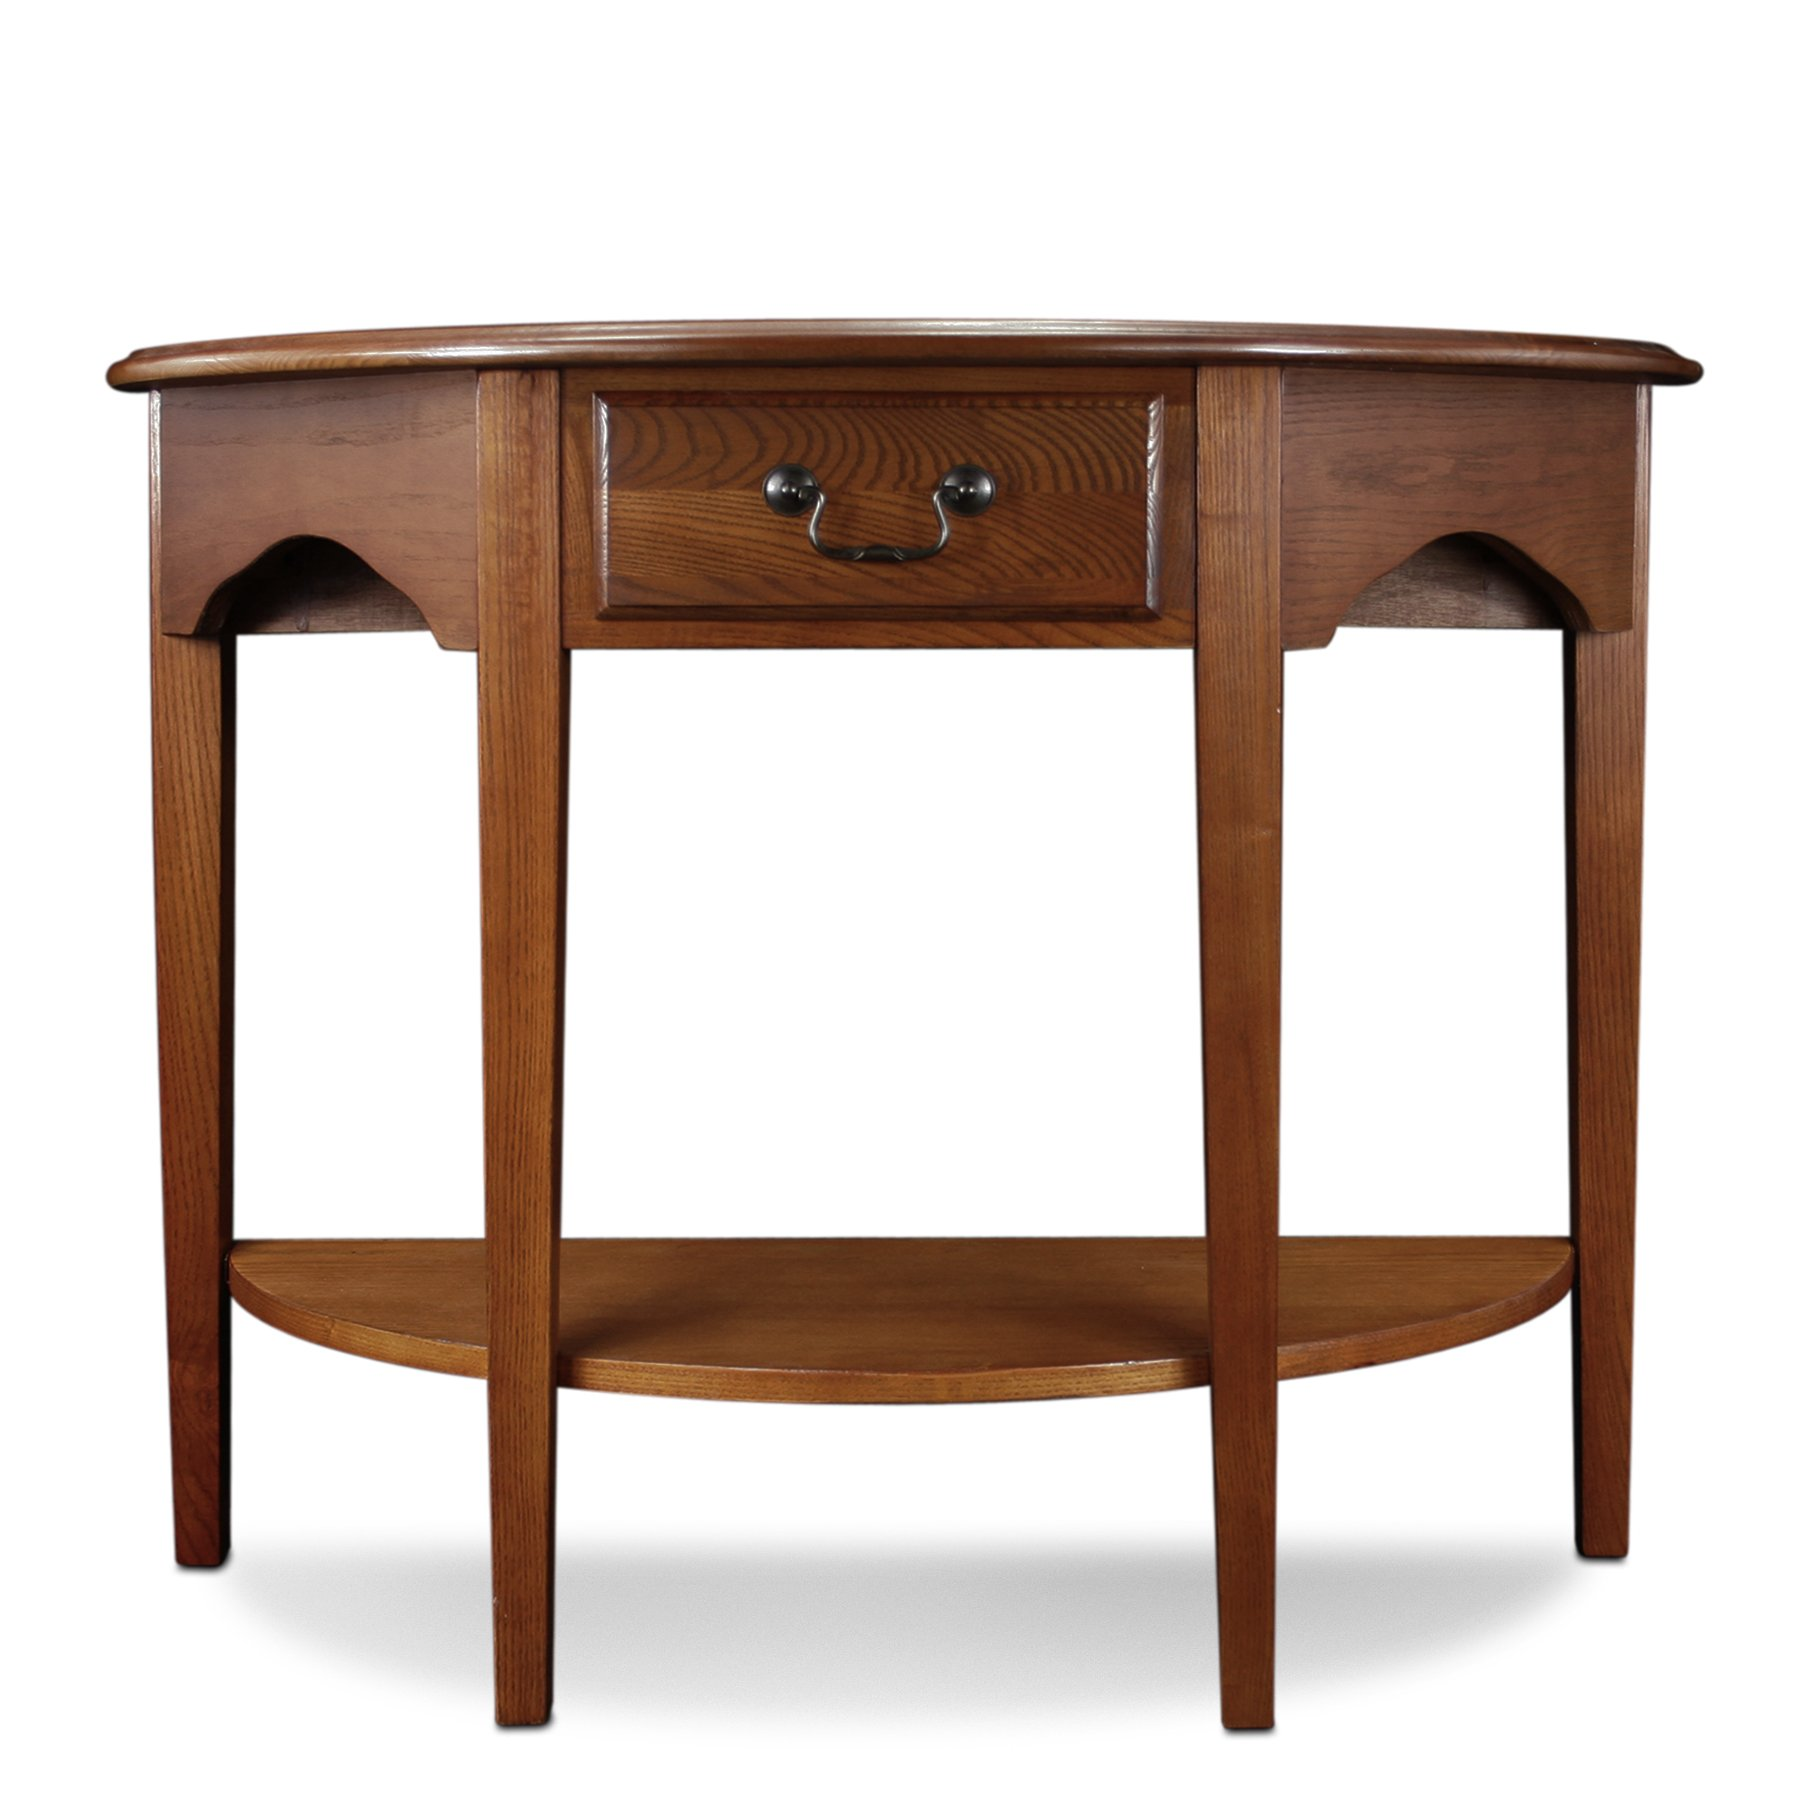 leick demilune hall console table medium oak kitchen corner accent dining west elm room sage green pottery barn sofa hallway chest drawers lucite furniture target changing mini